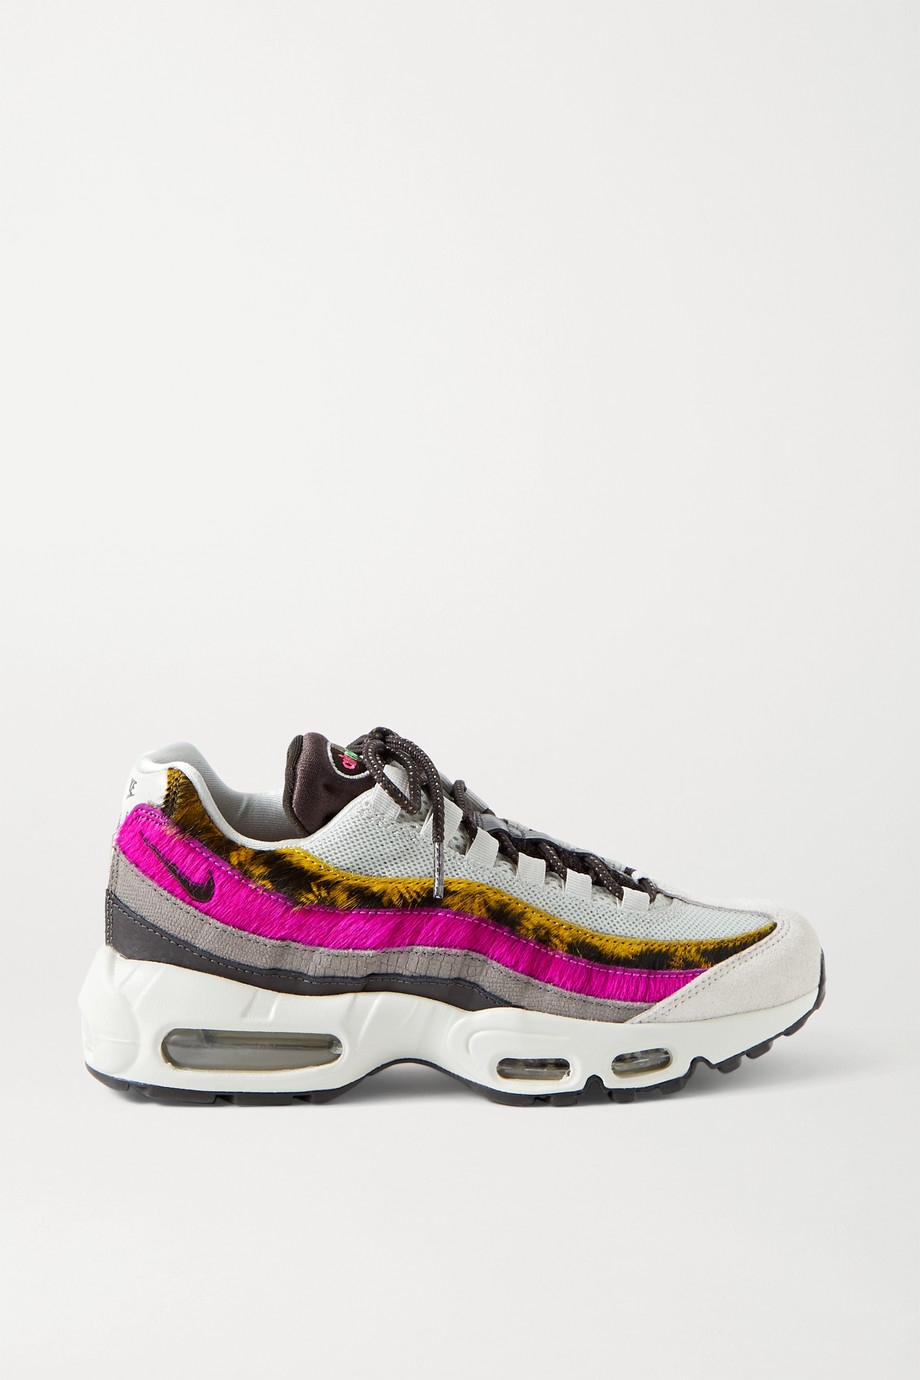 Nike Air Max 95 mesh, suede, calf hair and leather sneakers